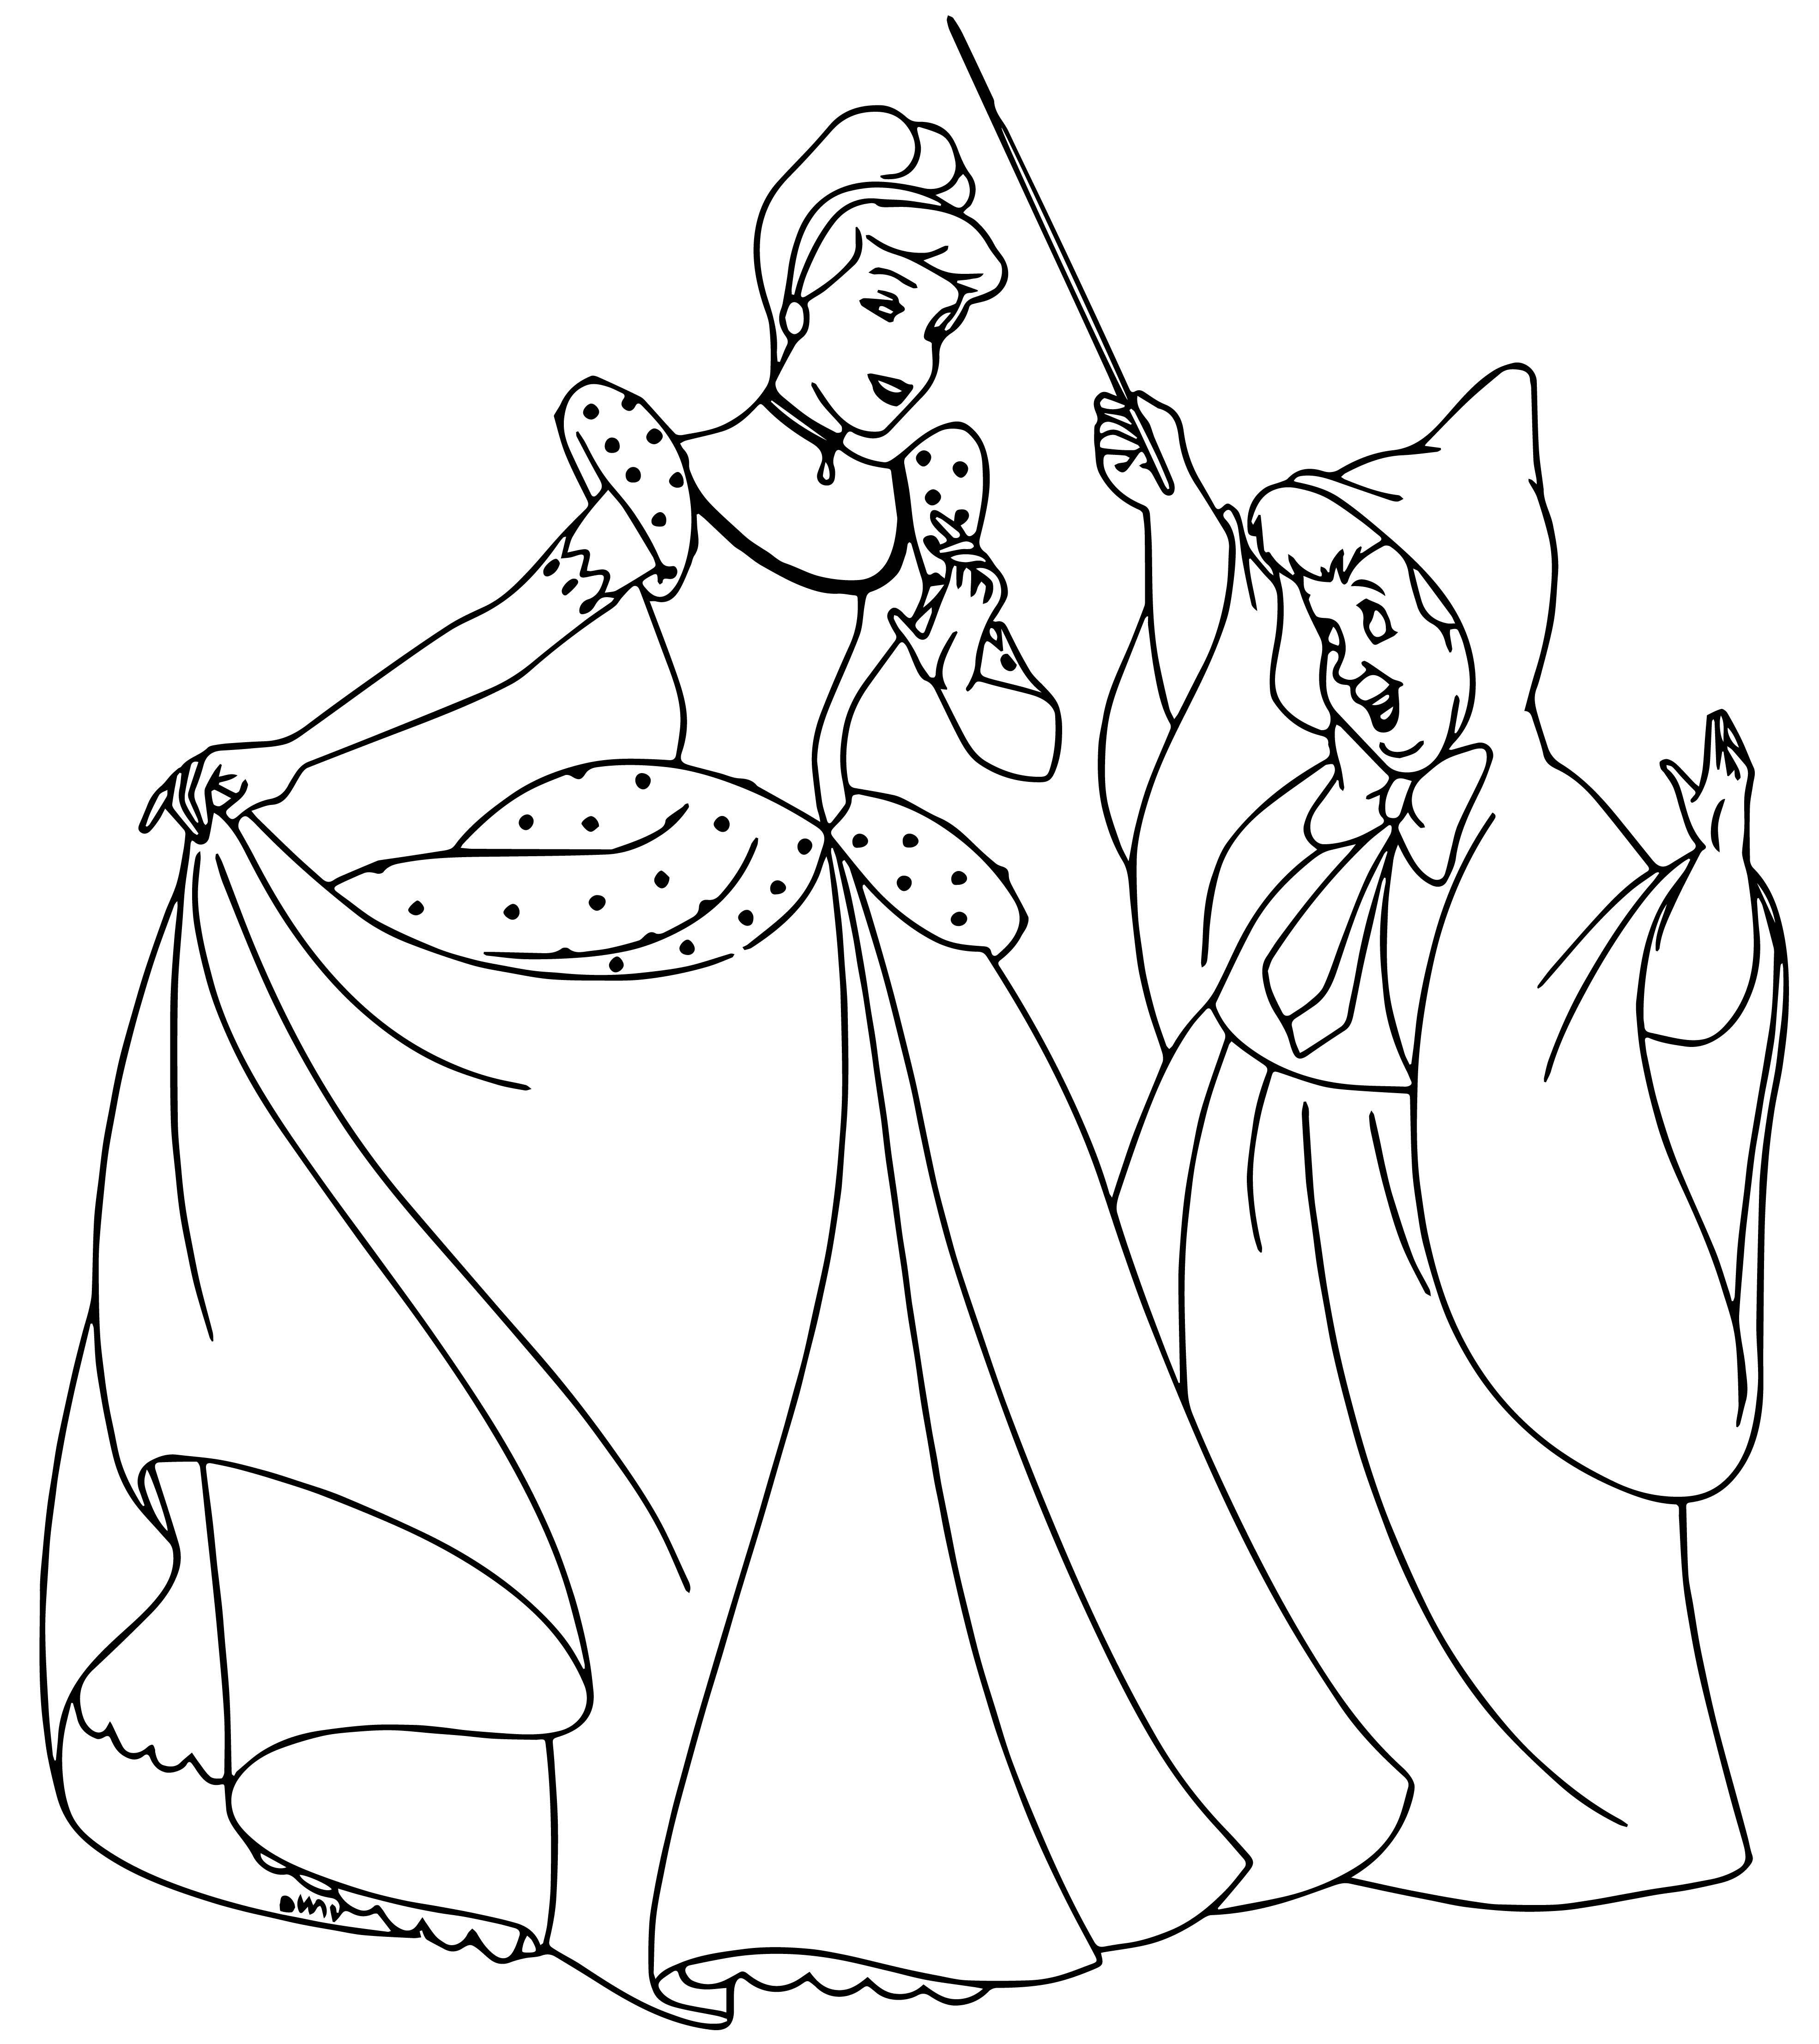 fairy godmother coloring pages | Cinderella Fairy Godmother Coloring Pages 03 ...